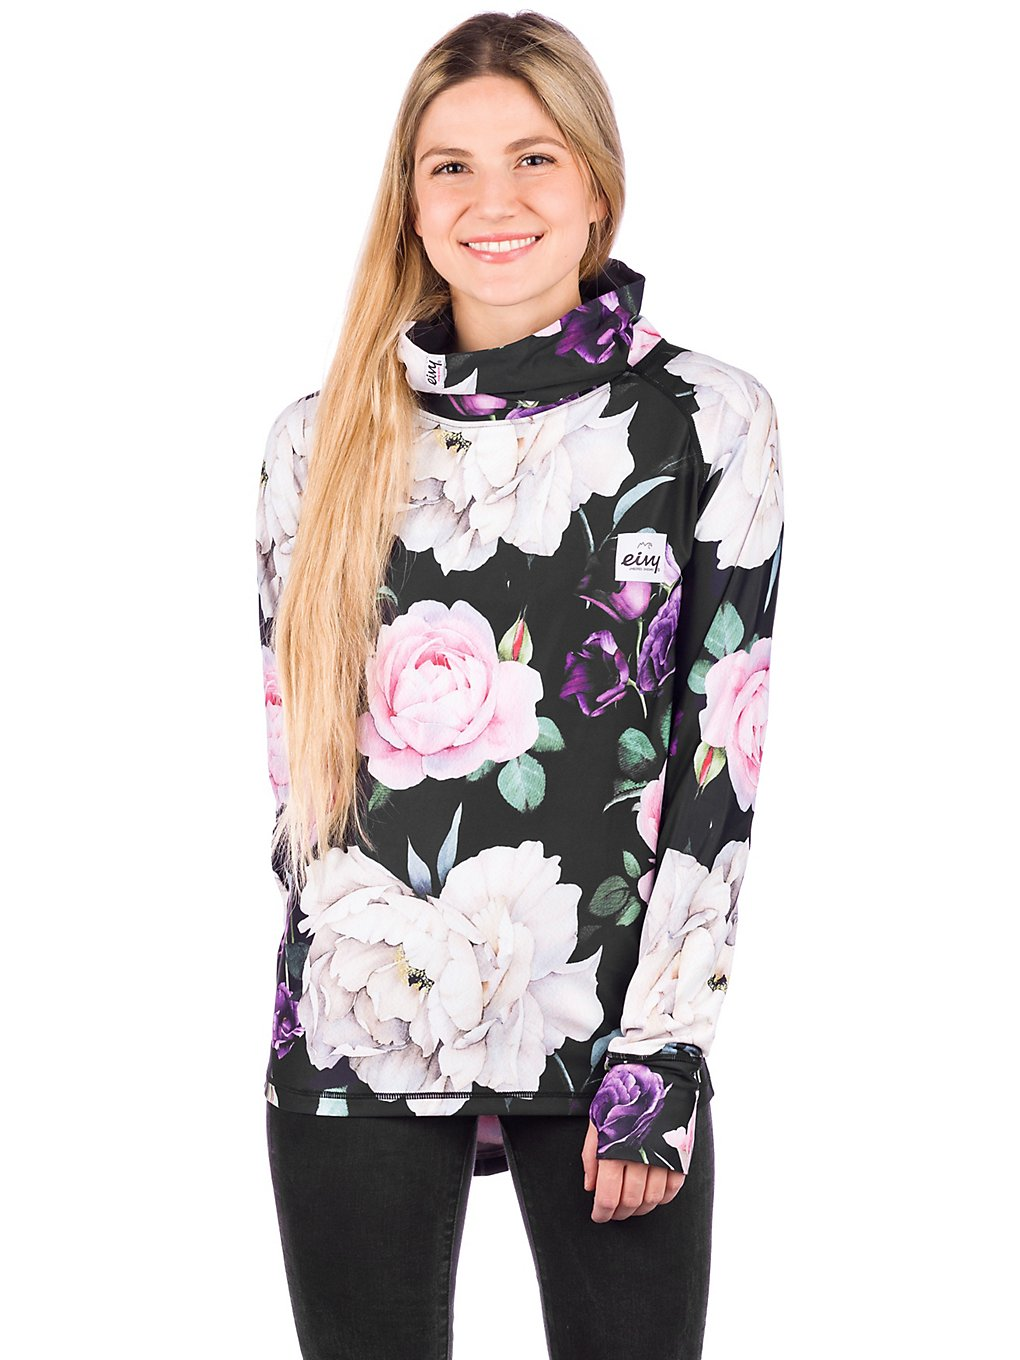 Eivy Icecold Gaiter Base Layer Top patroon